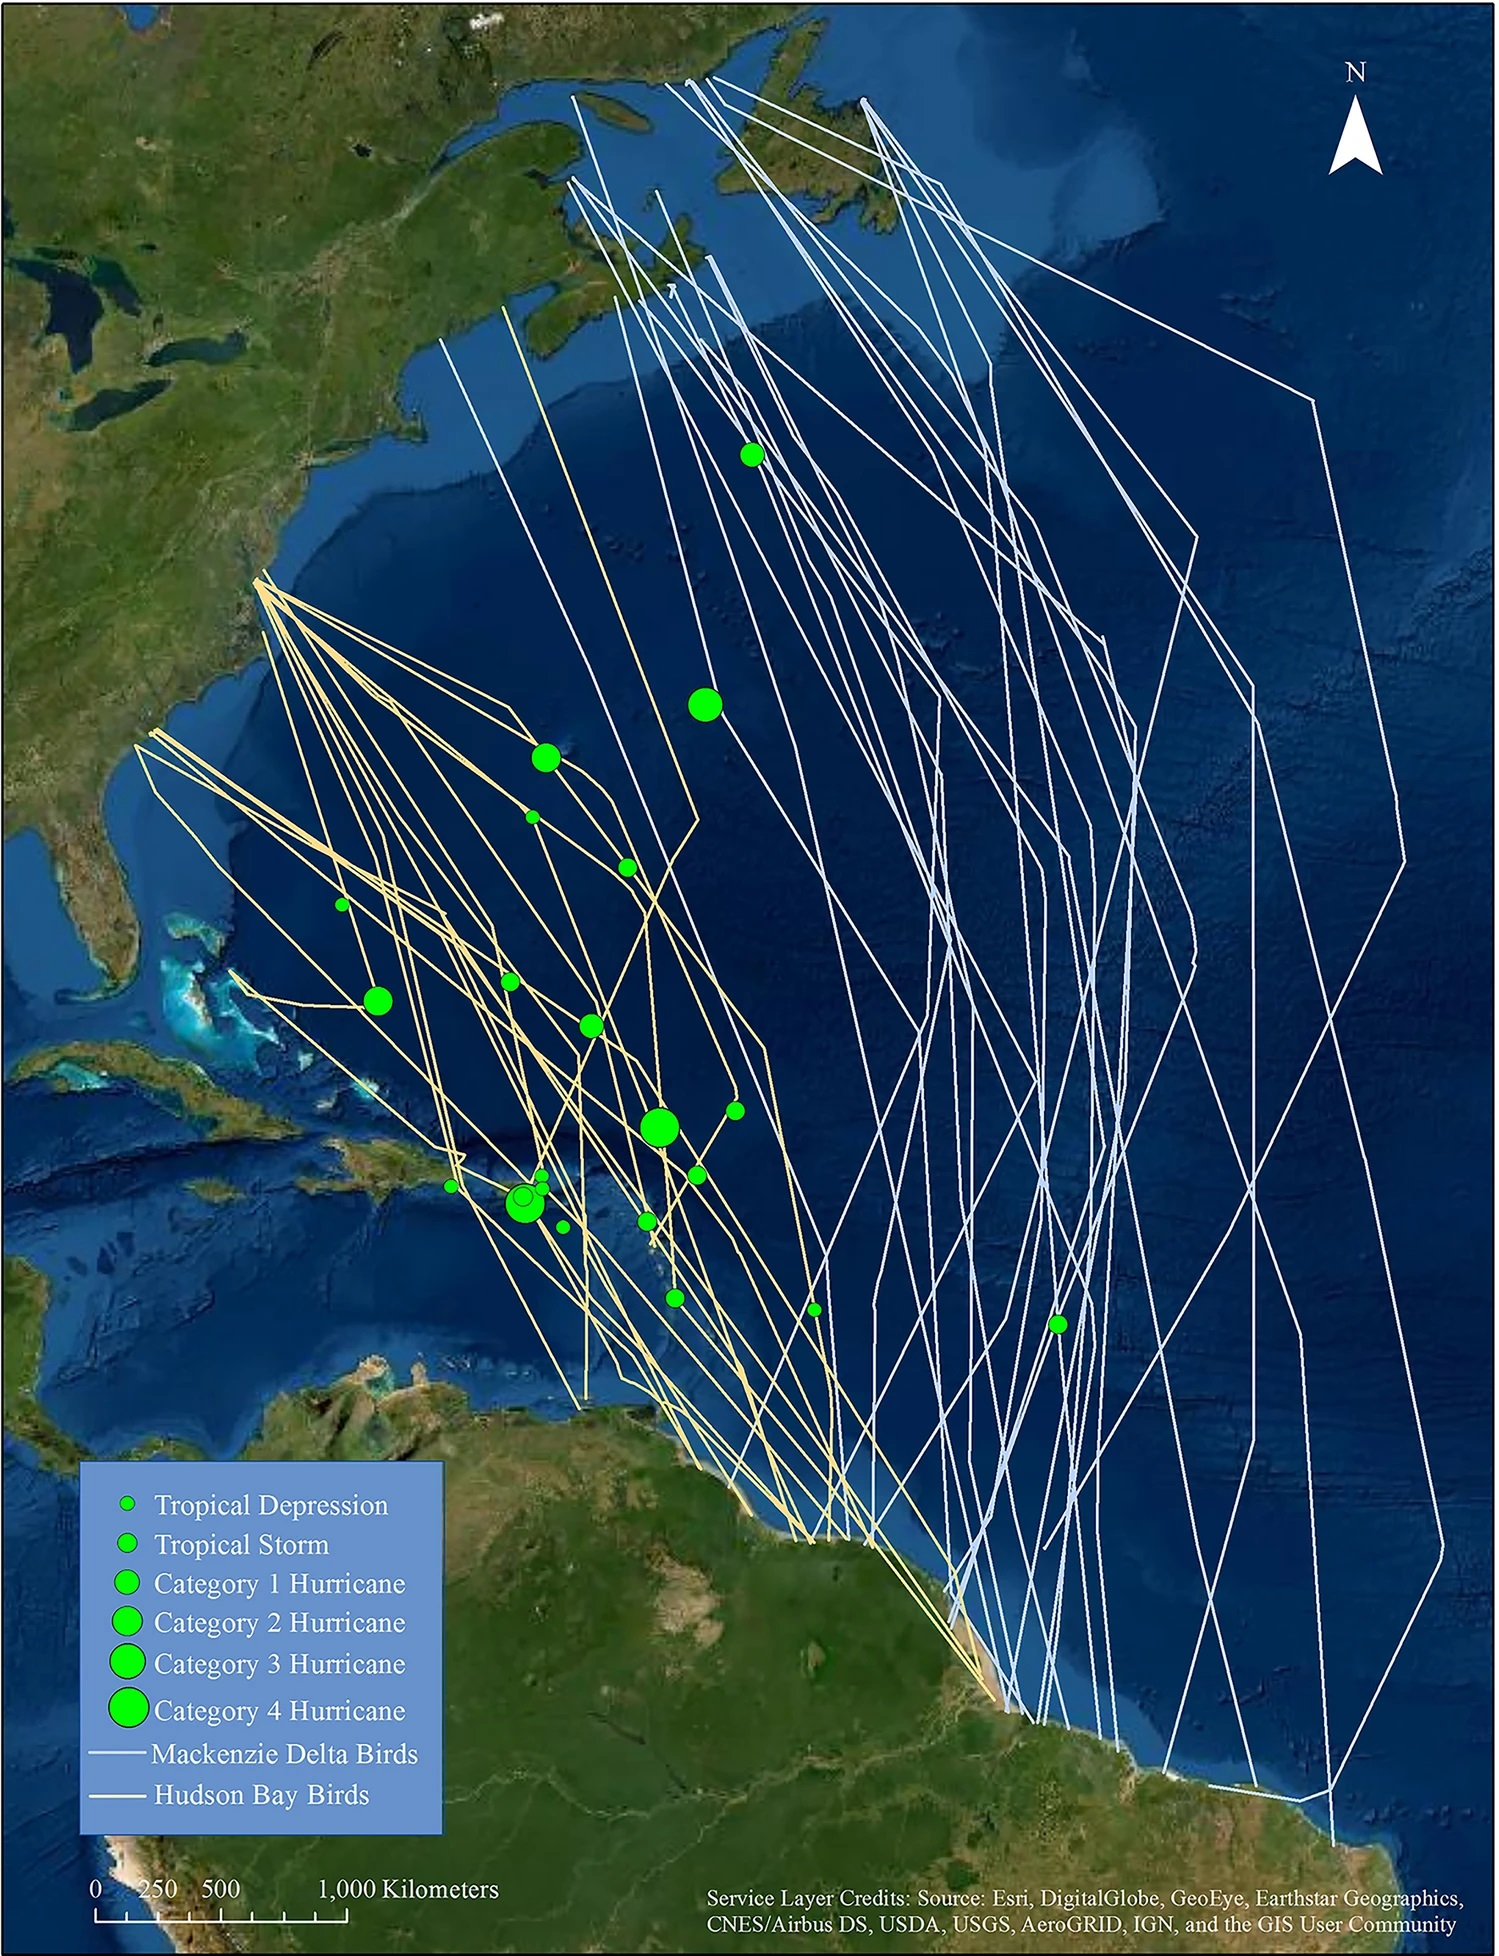 Individual tracks of whimbrels during fall migrations from Mackenzie Delta and Hudson Bay populations